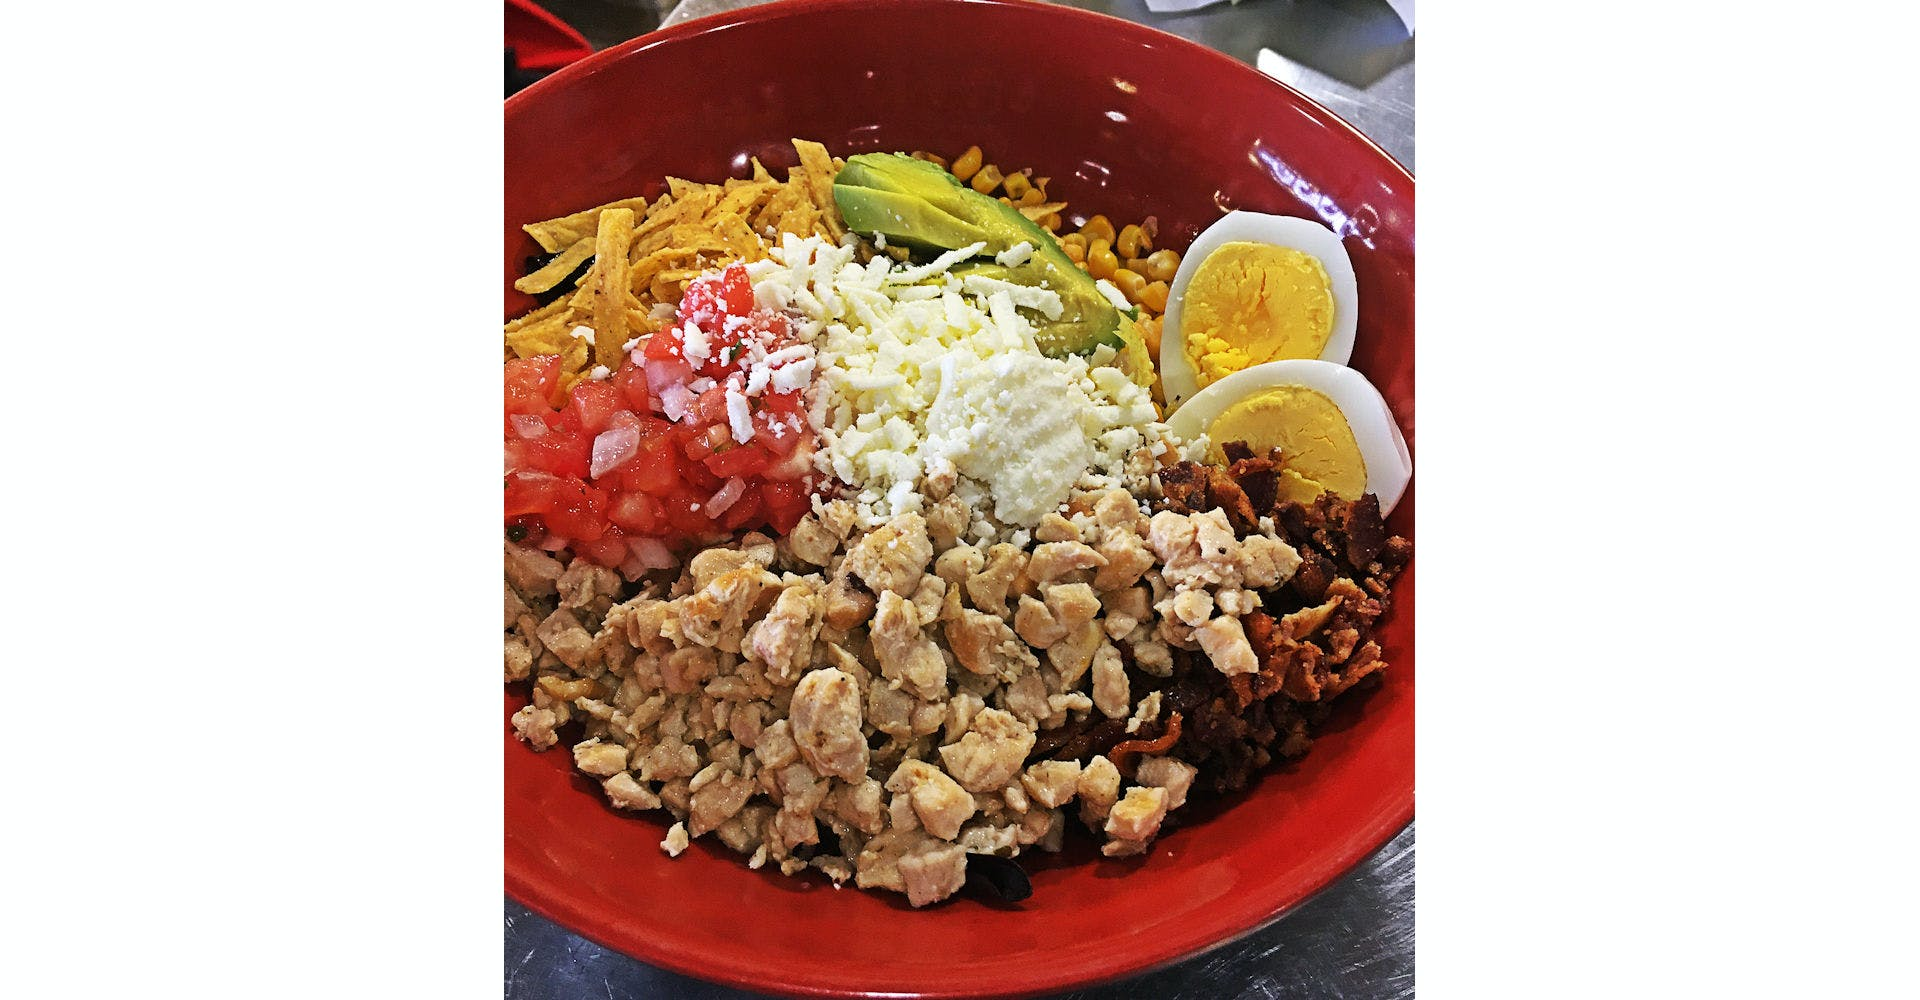 Chicken Chipotle Salad from Silly Serrano Mexican Restaurant in Eau Claire, WI